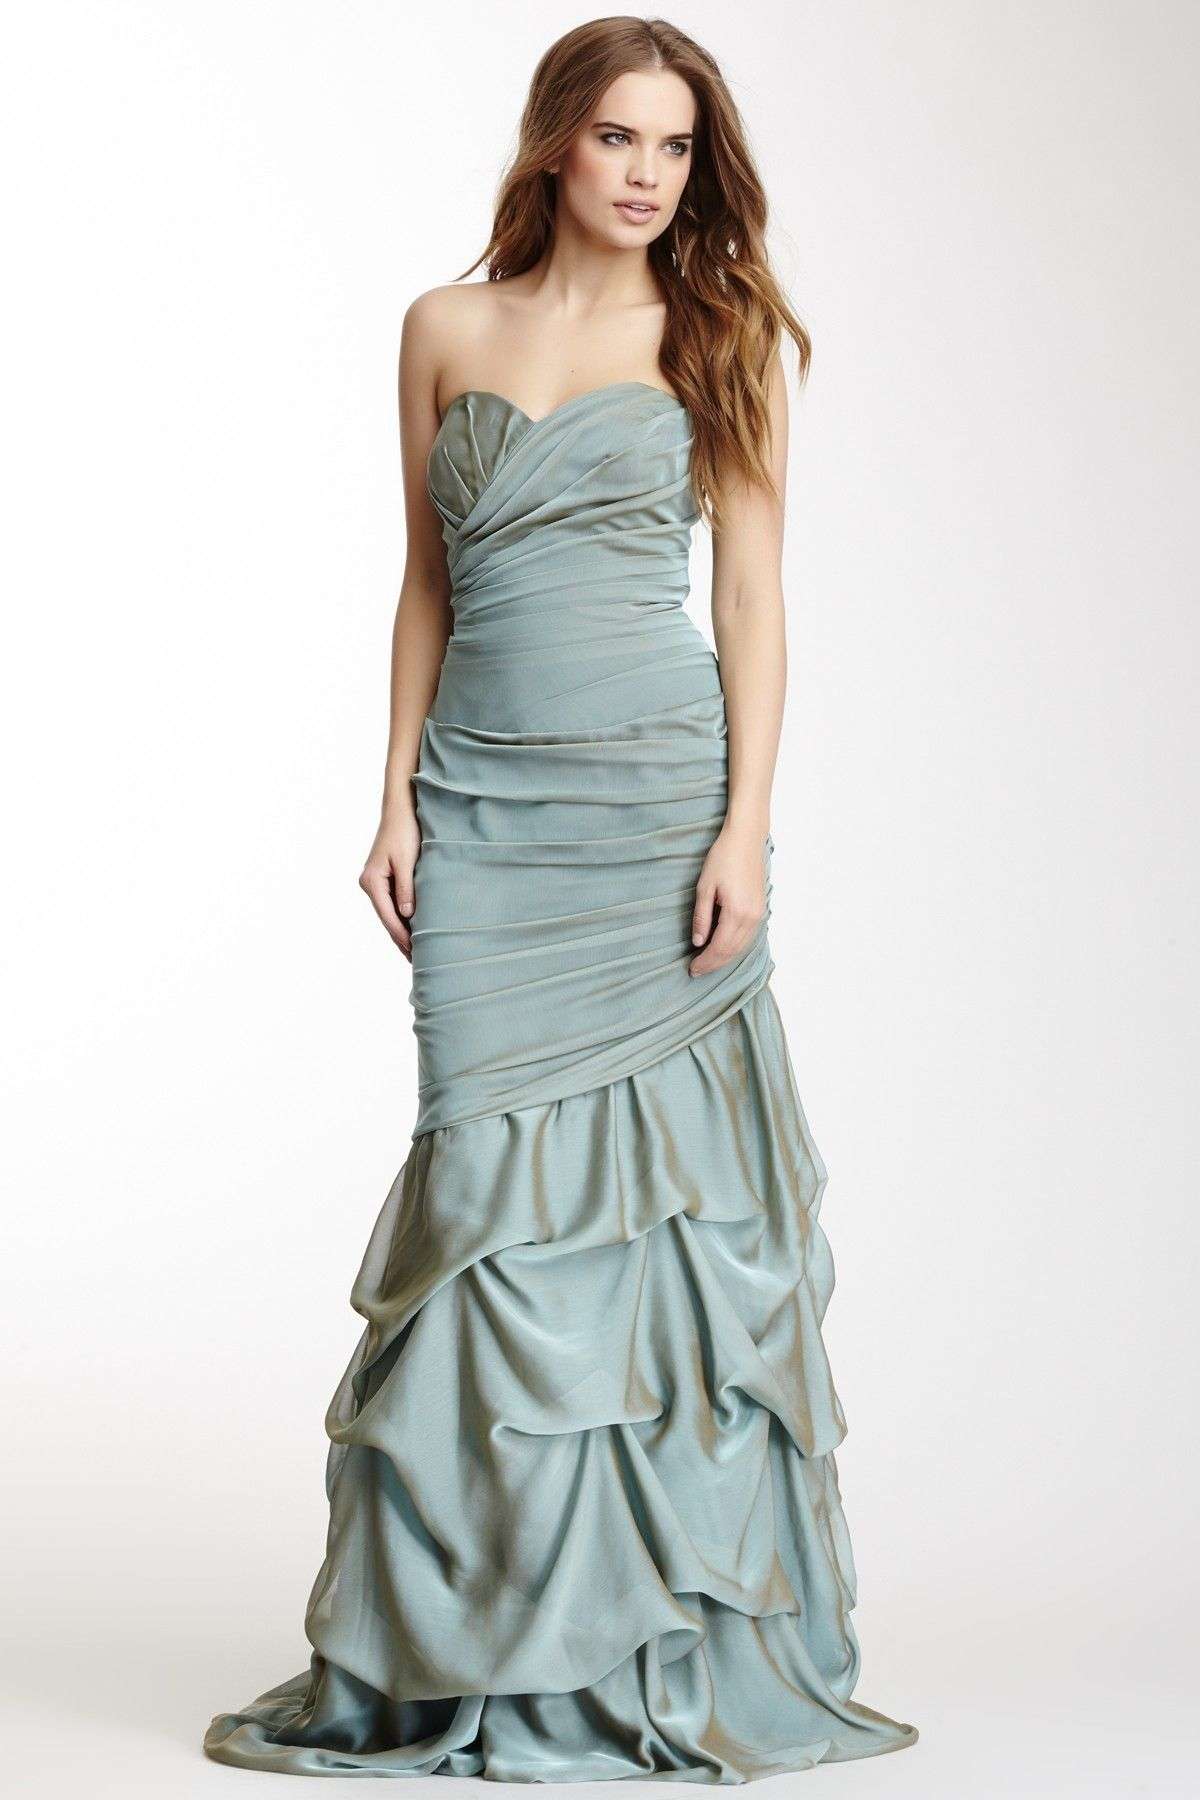 Wedding dress donations for military brides  strapless ruched gown  CoutureGowns  Pinterest  Gowns